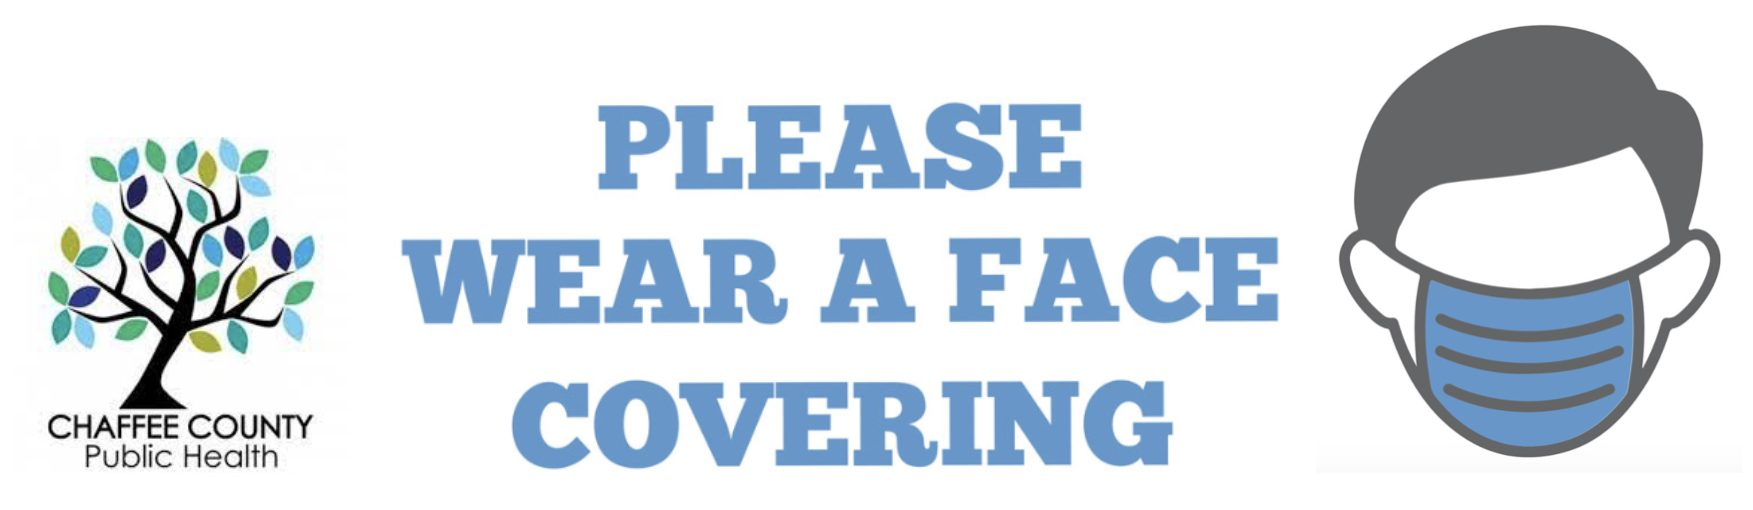 Face Coverings are Required in Public Spaces